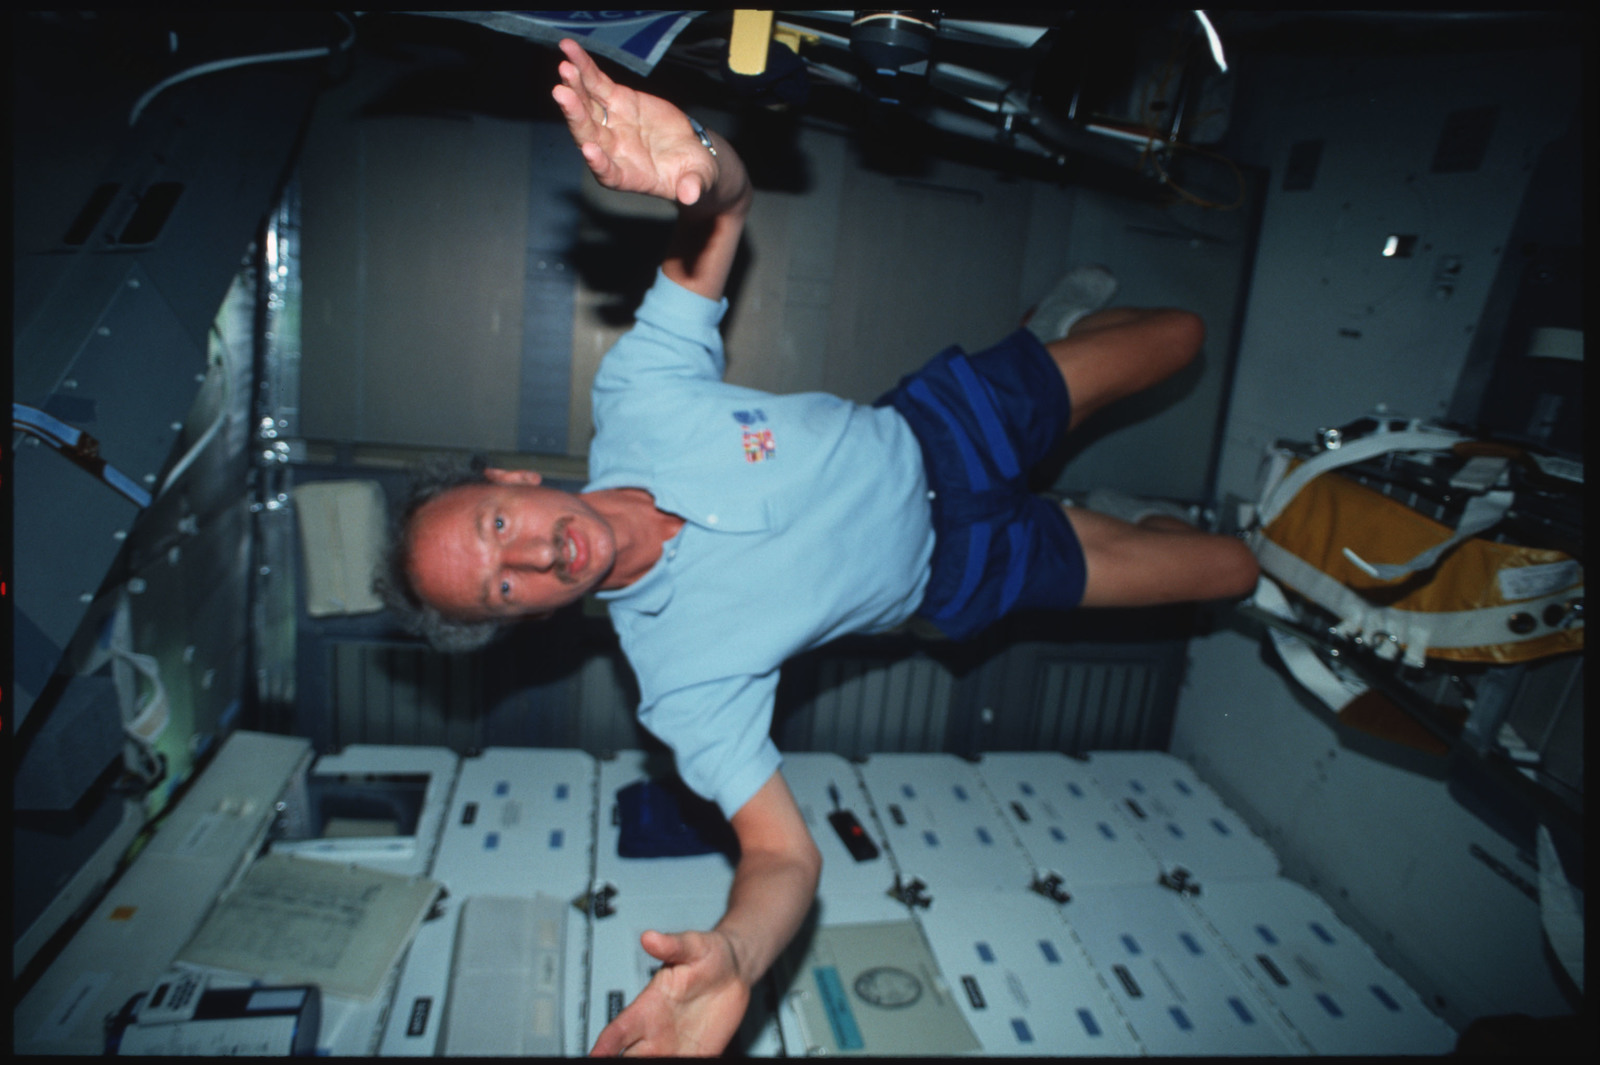 S45-07-032 - STS-045 - STS-45 crewmembers on the middeck of Atlantis